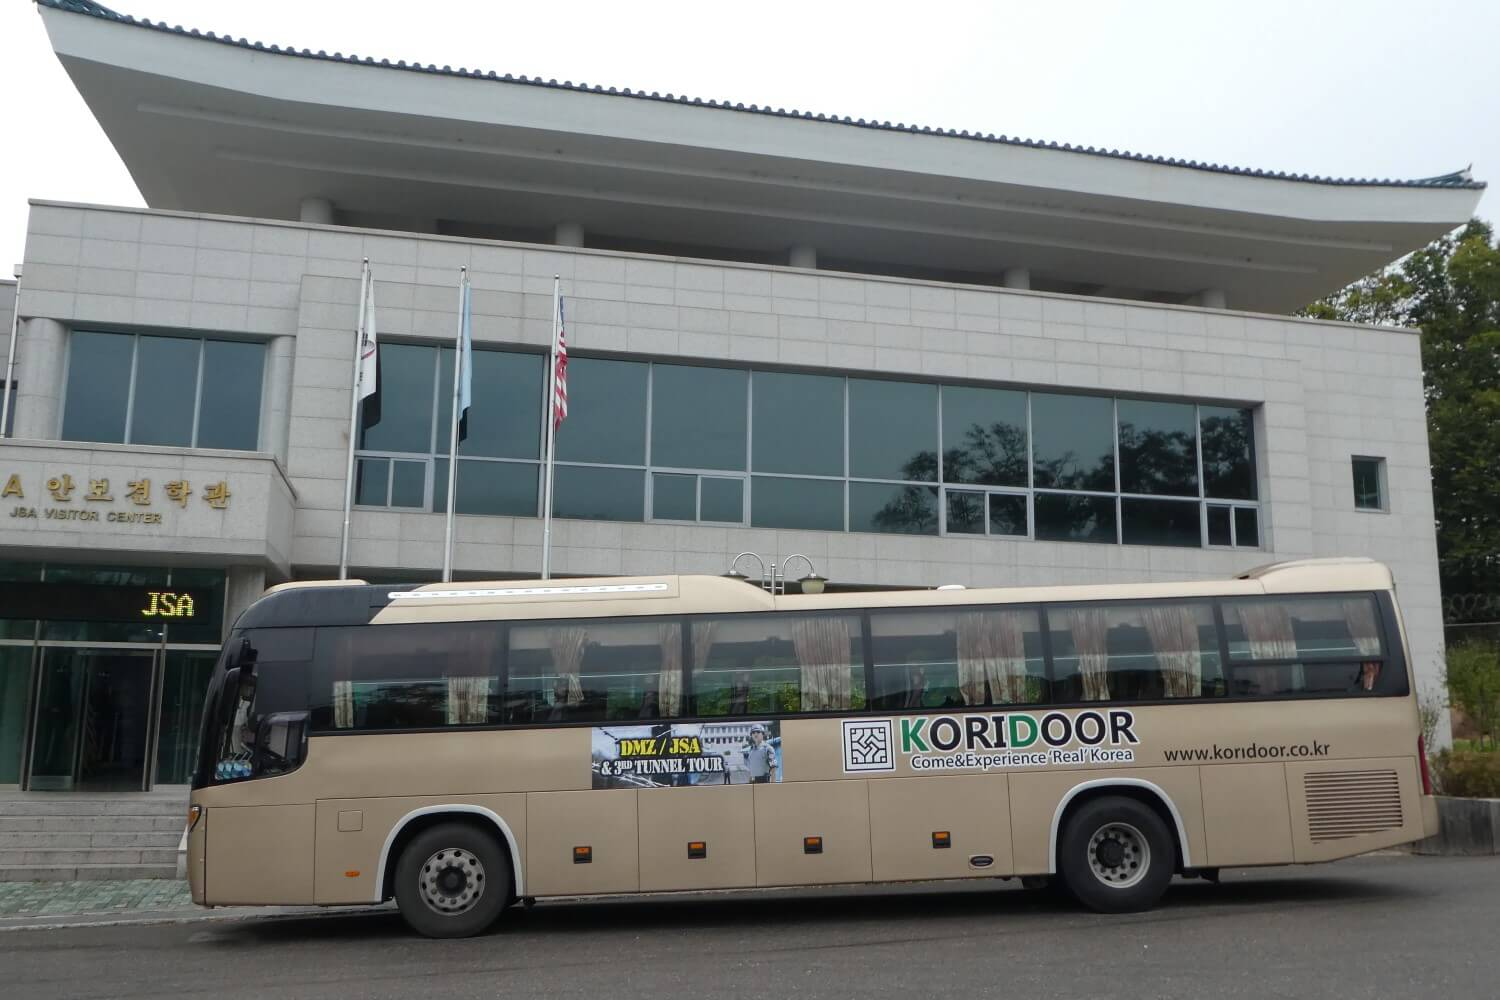 The bus to JSA border